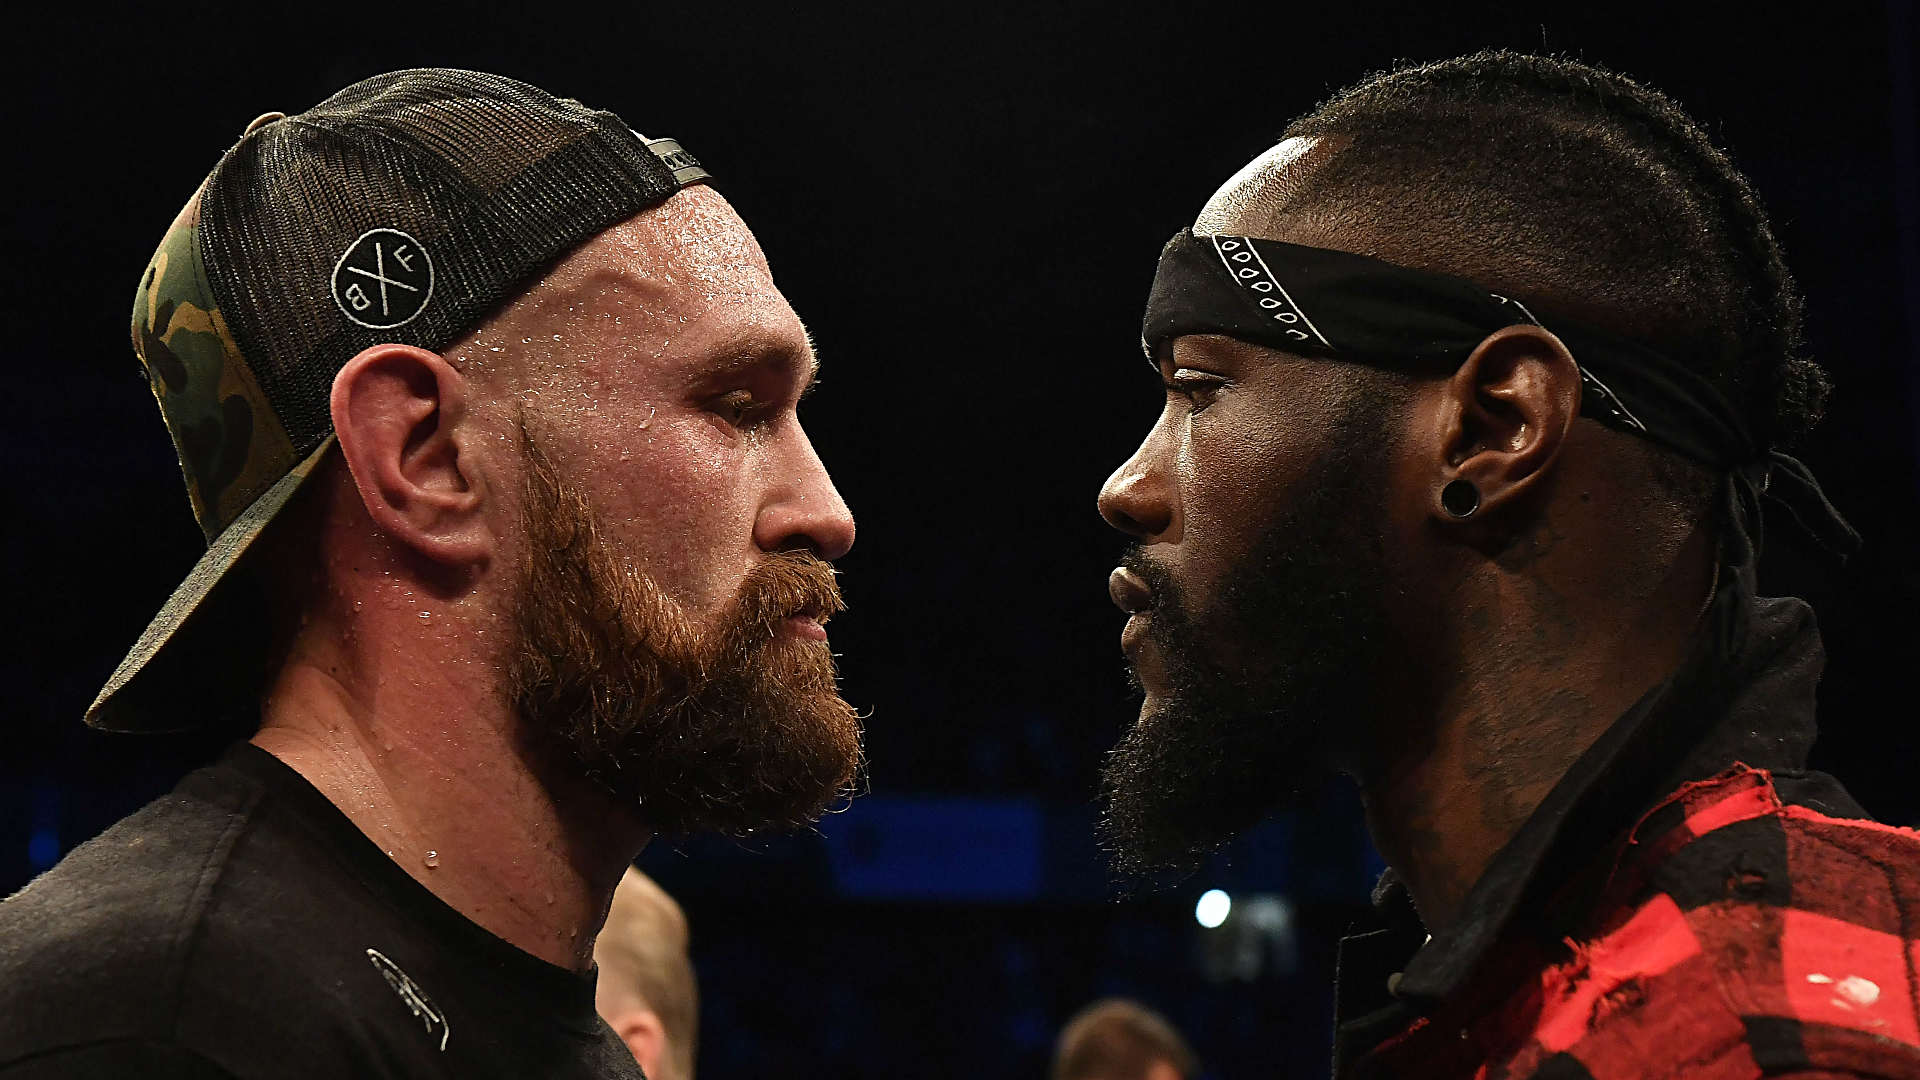 Wilder pushes Fury in frenetic press conference